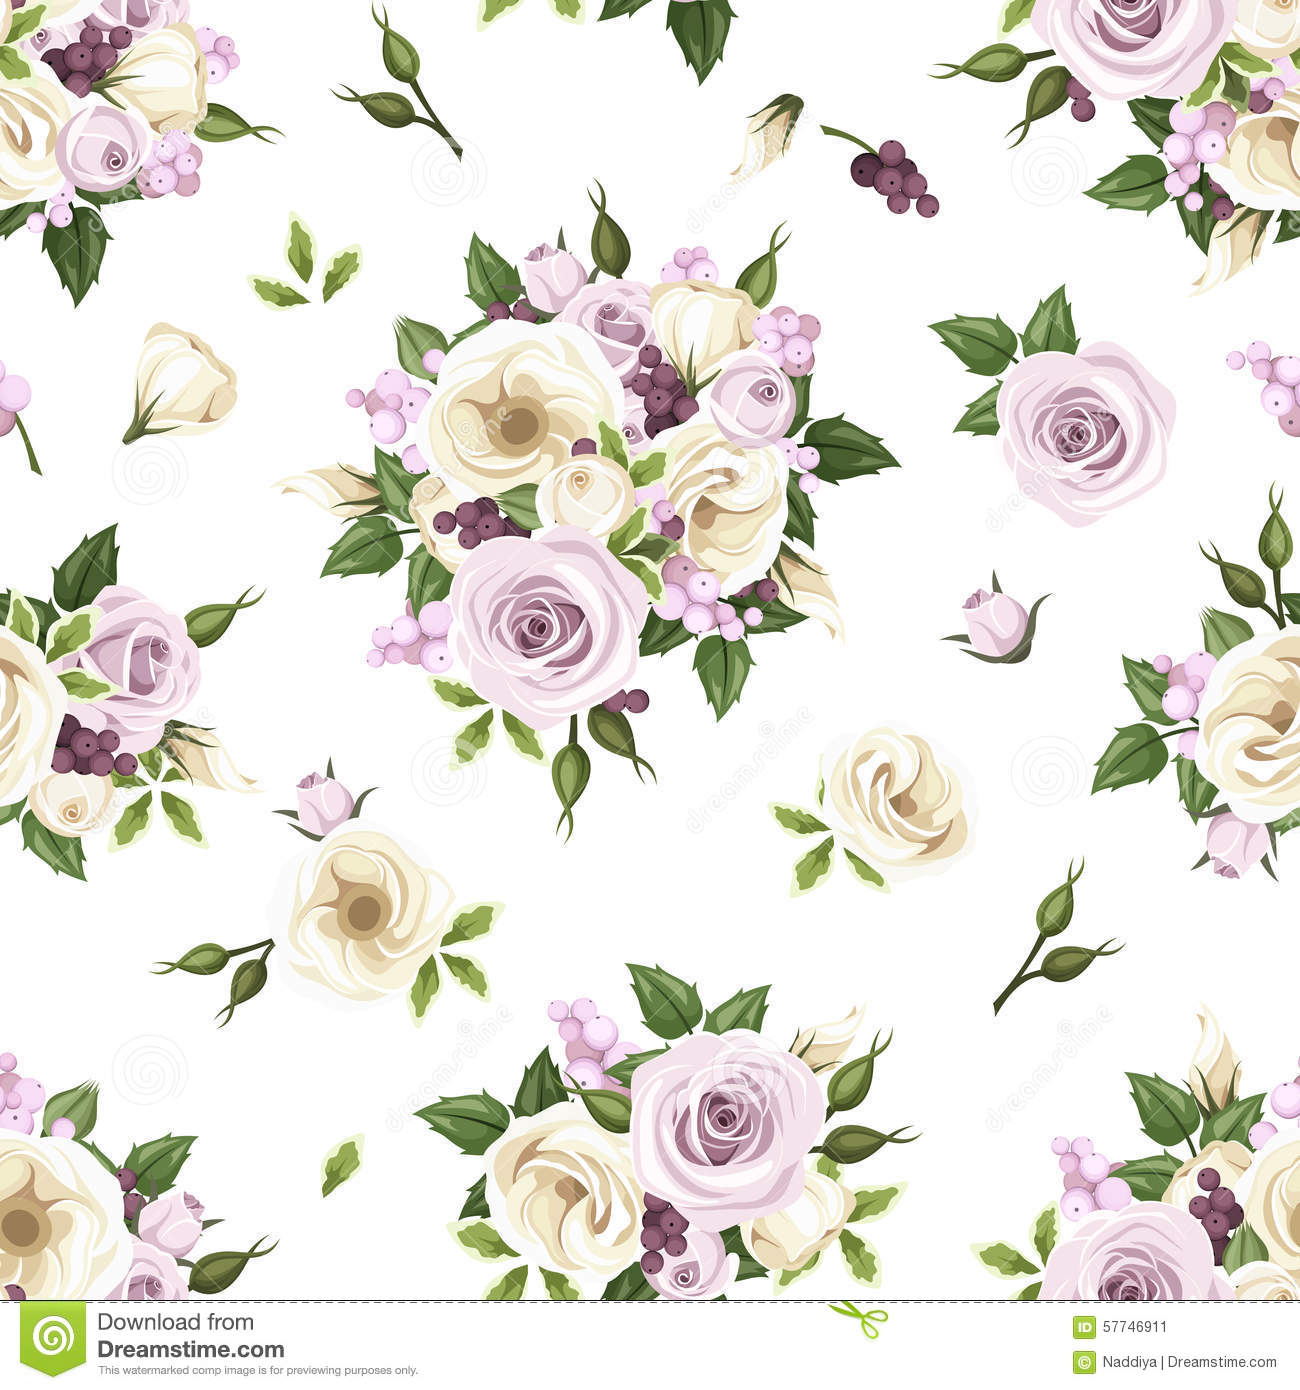 Seamless pattern with purple and white roses and lisianthus flowers download seamless pattern with purple and white roses and lisianthus flowers vector illustration stock altavistaventures Choice Image